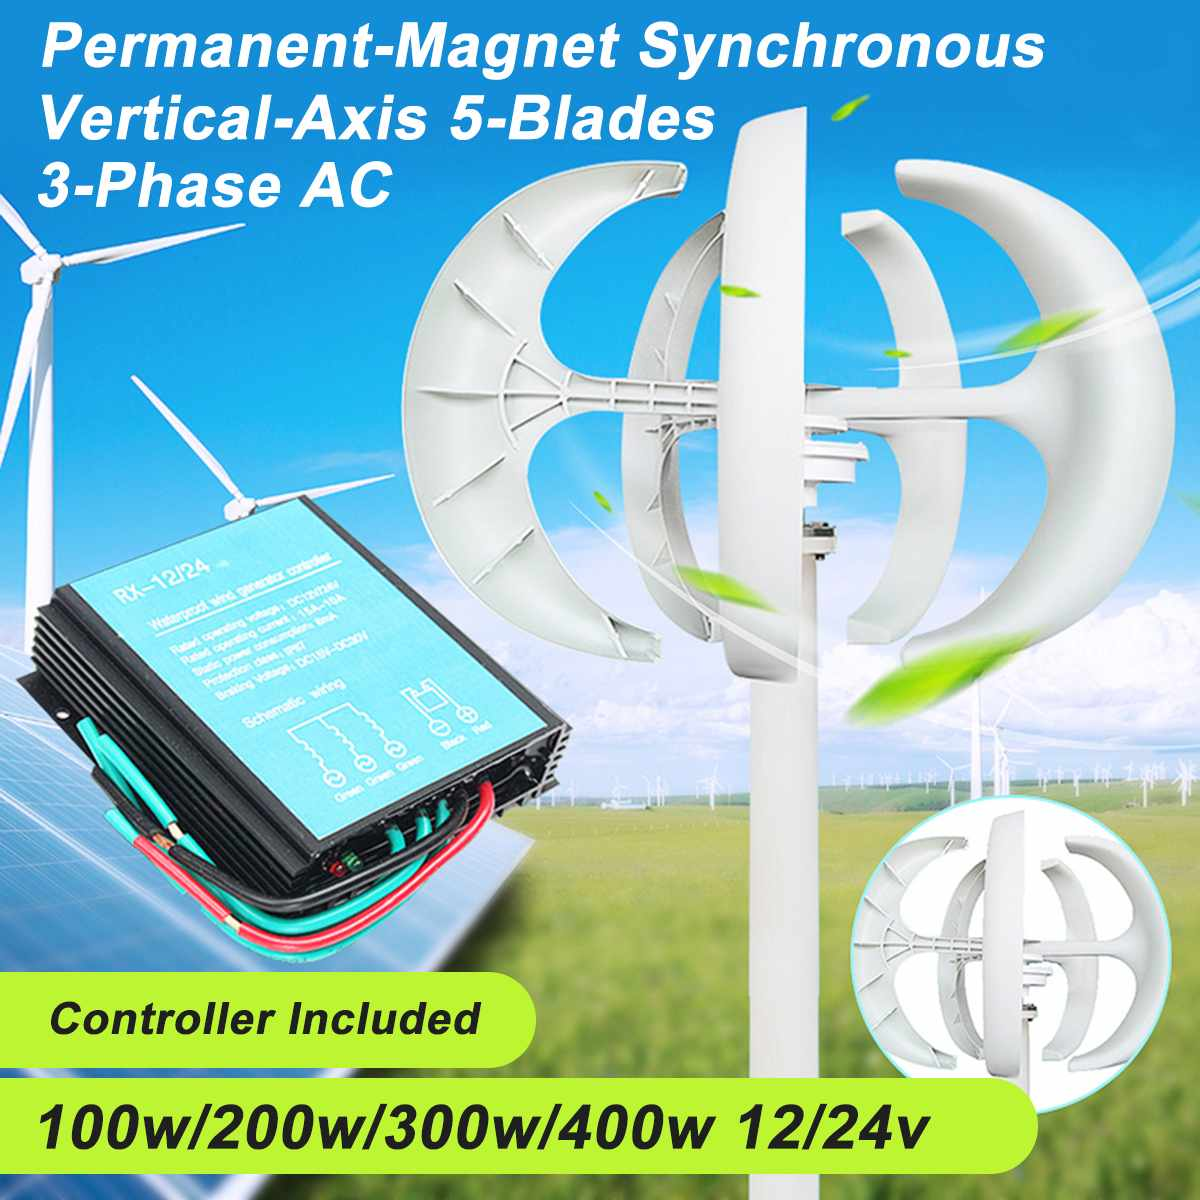 100w/200w/300w/400W 12V/24V Vertical Axis Wind Turbine Generator VAWT Boat Garden with Controller Home Residential